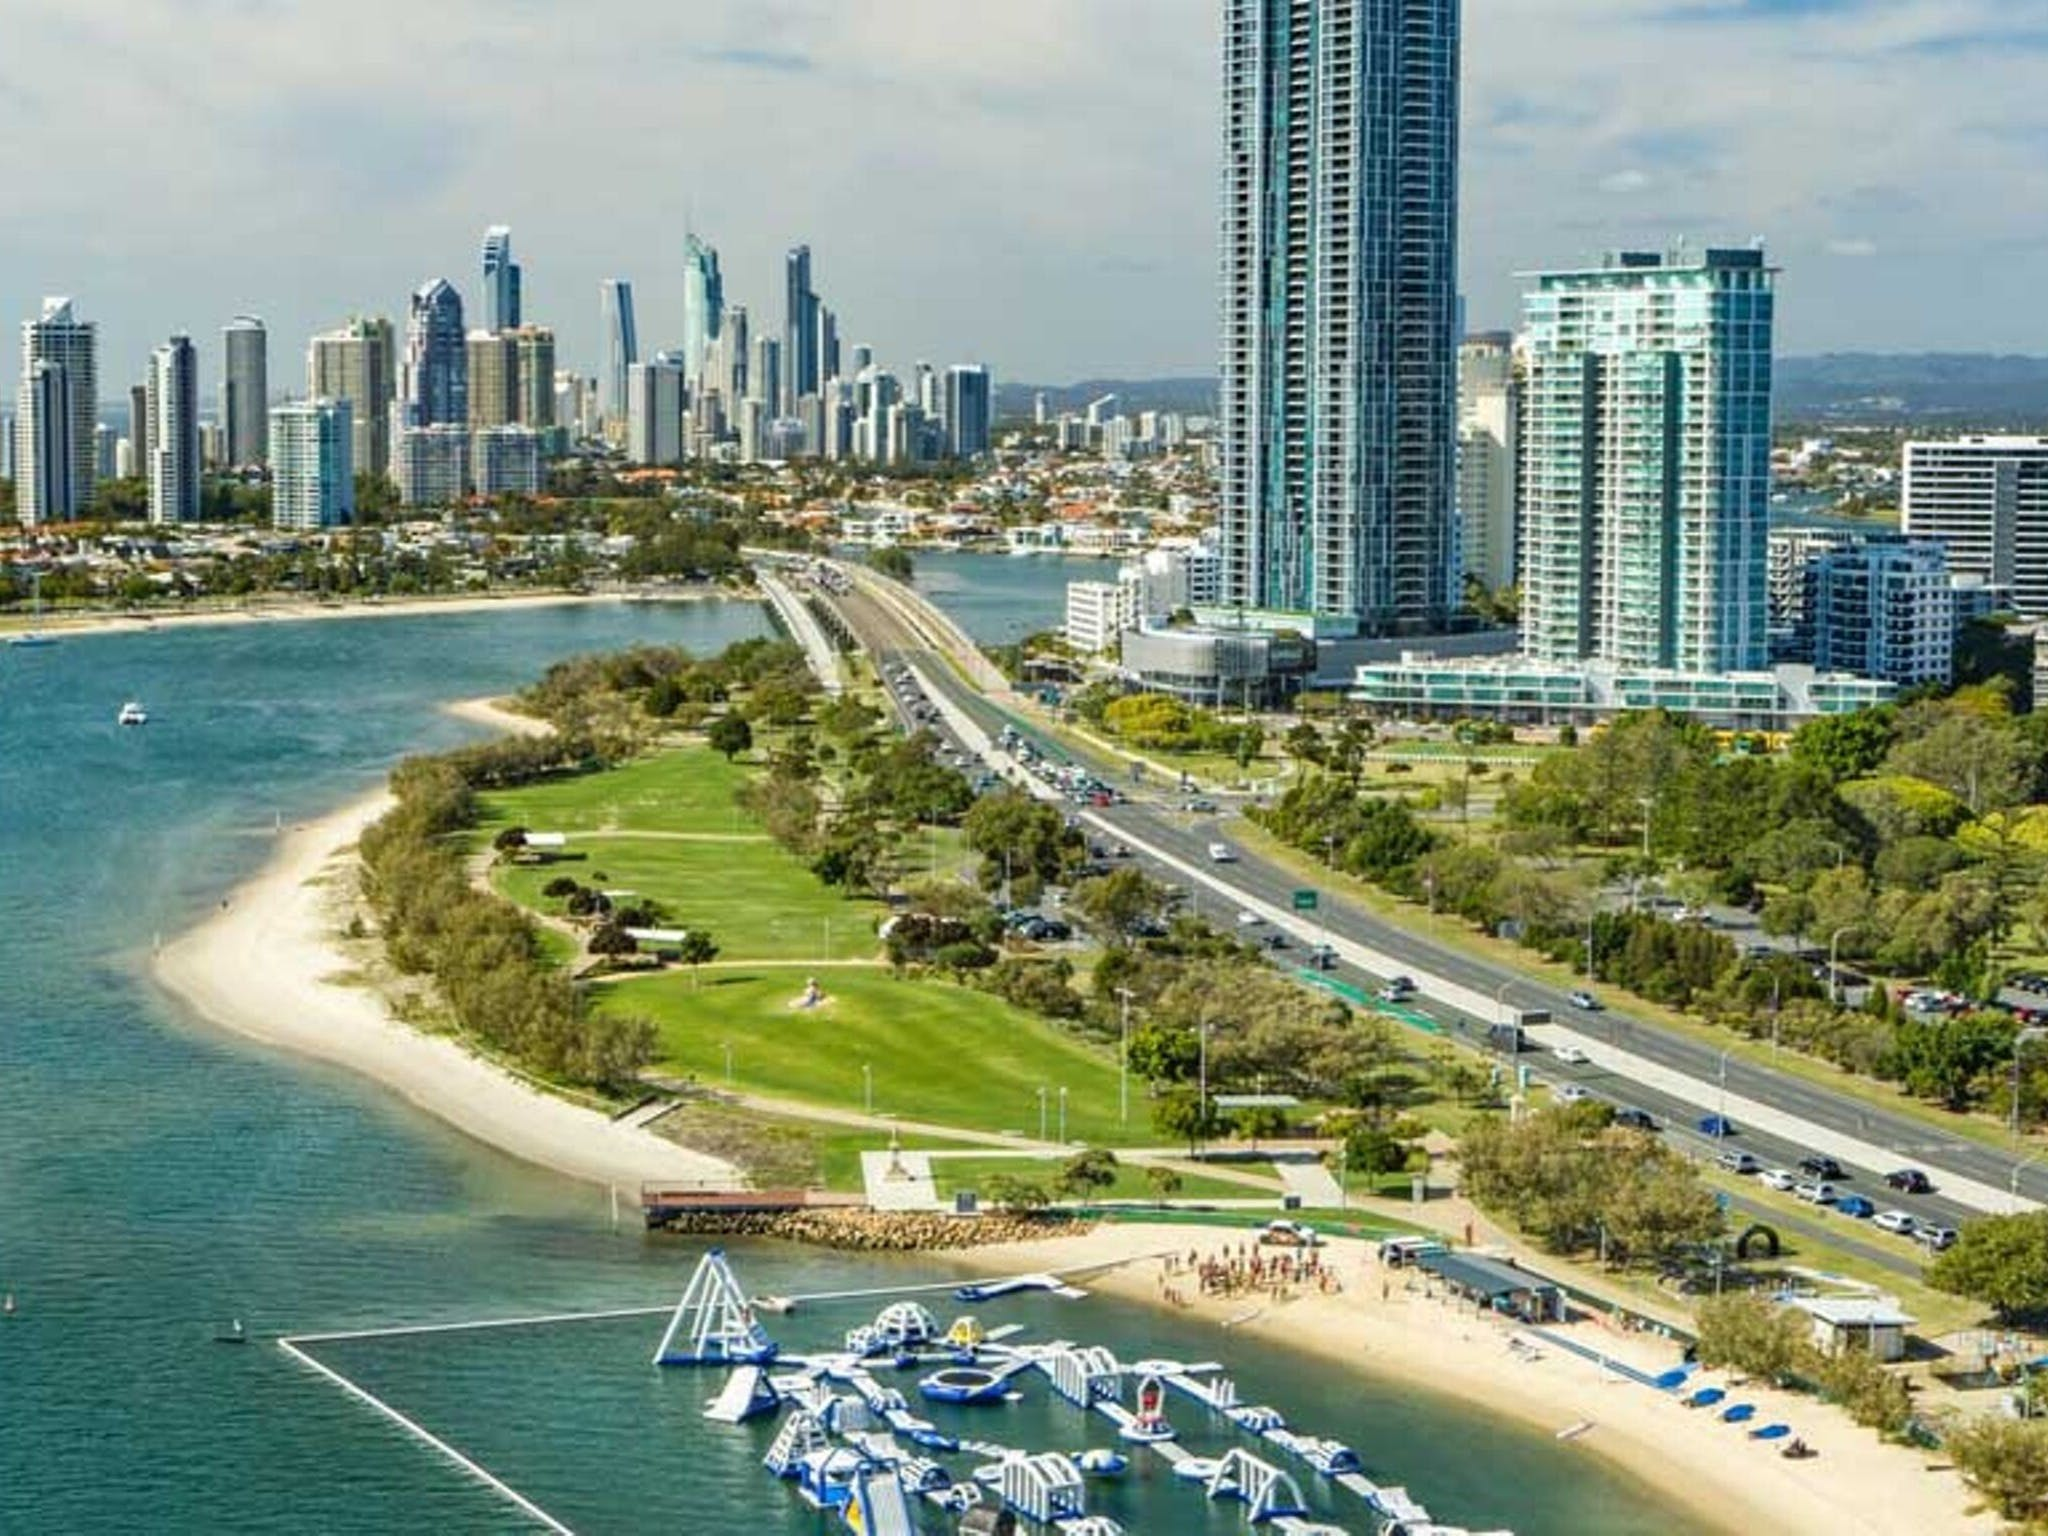 Broadwater Parklands - Accommodation Perth